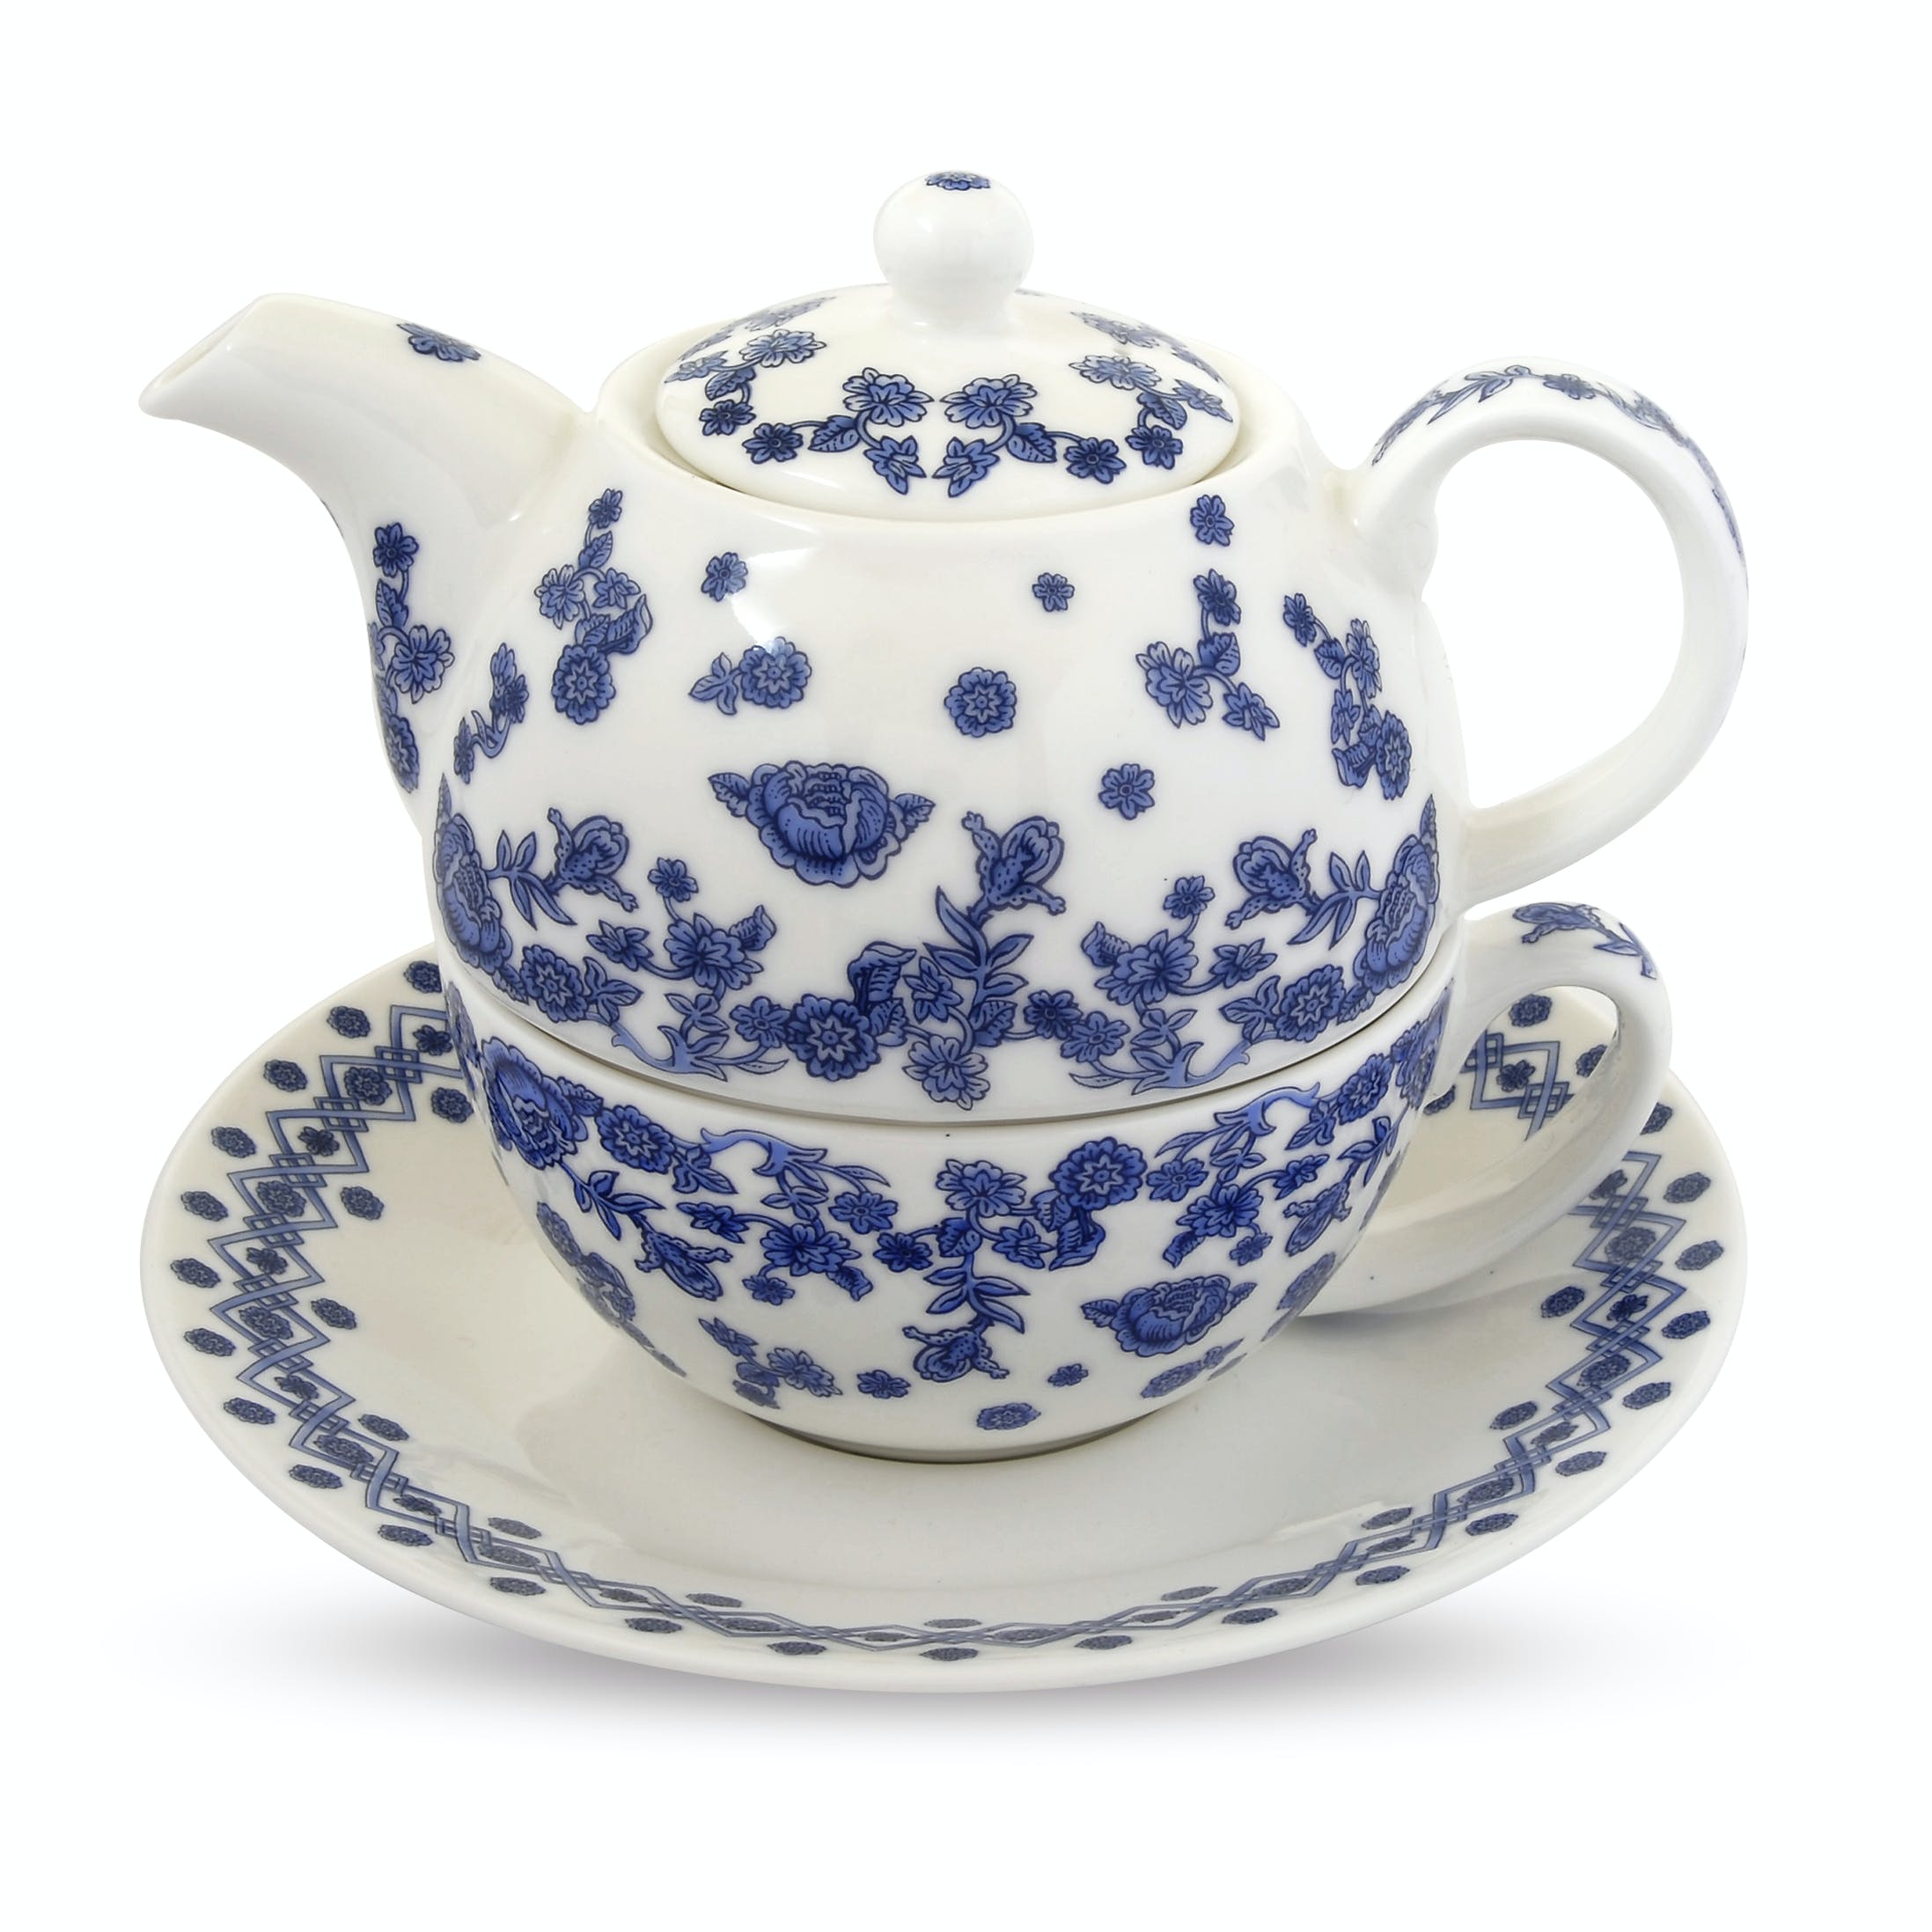 Inspired by the delft ceramic collection of Queen Mary, this fine bone china tea for one set is perfect for afternoon tea.